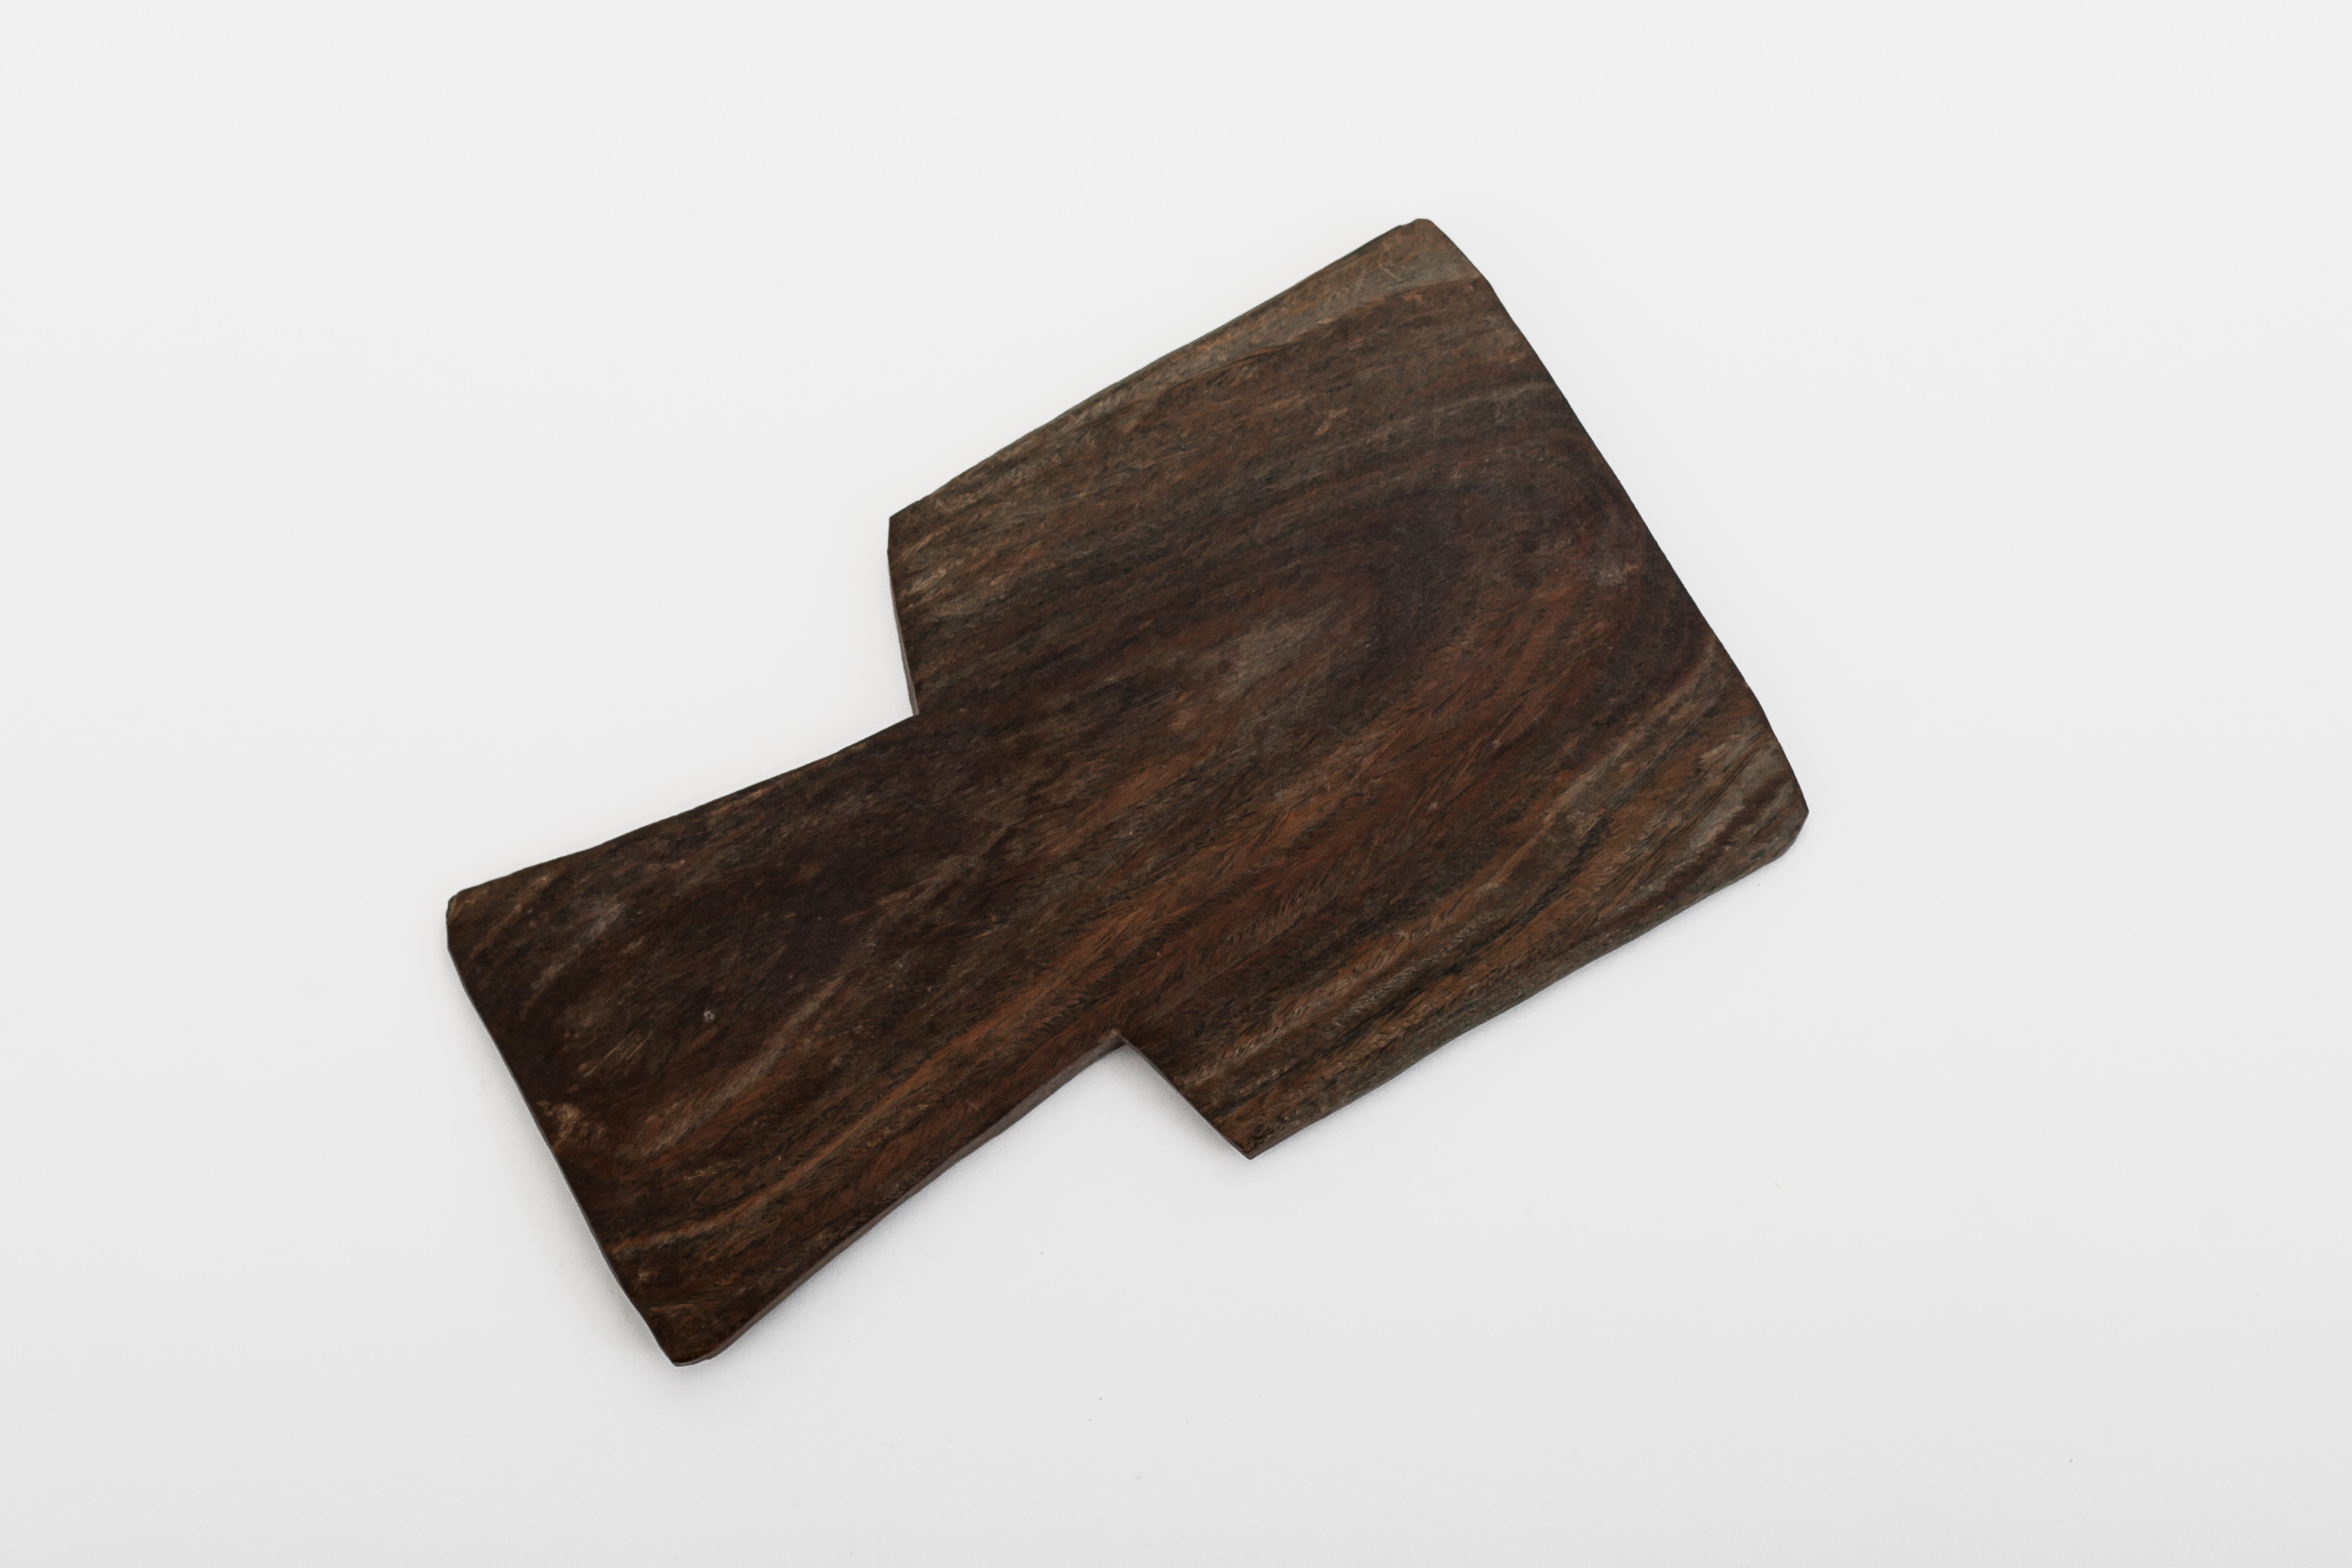 Wood carved into this shape to use for throwing in competitions.